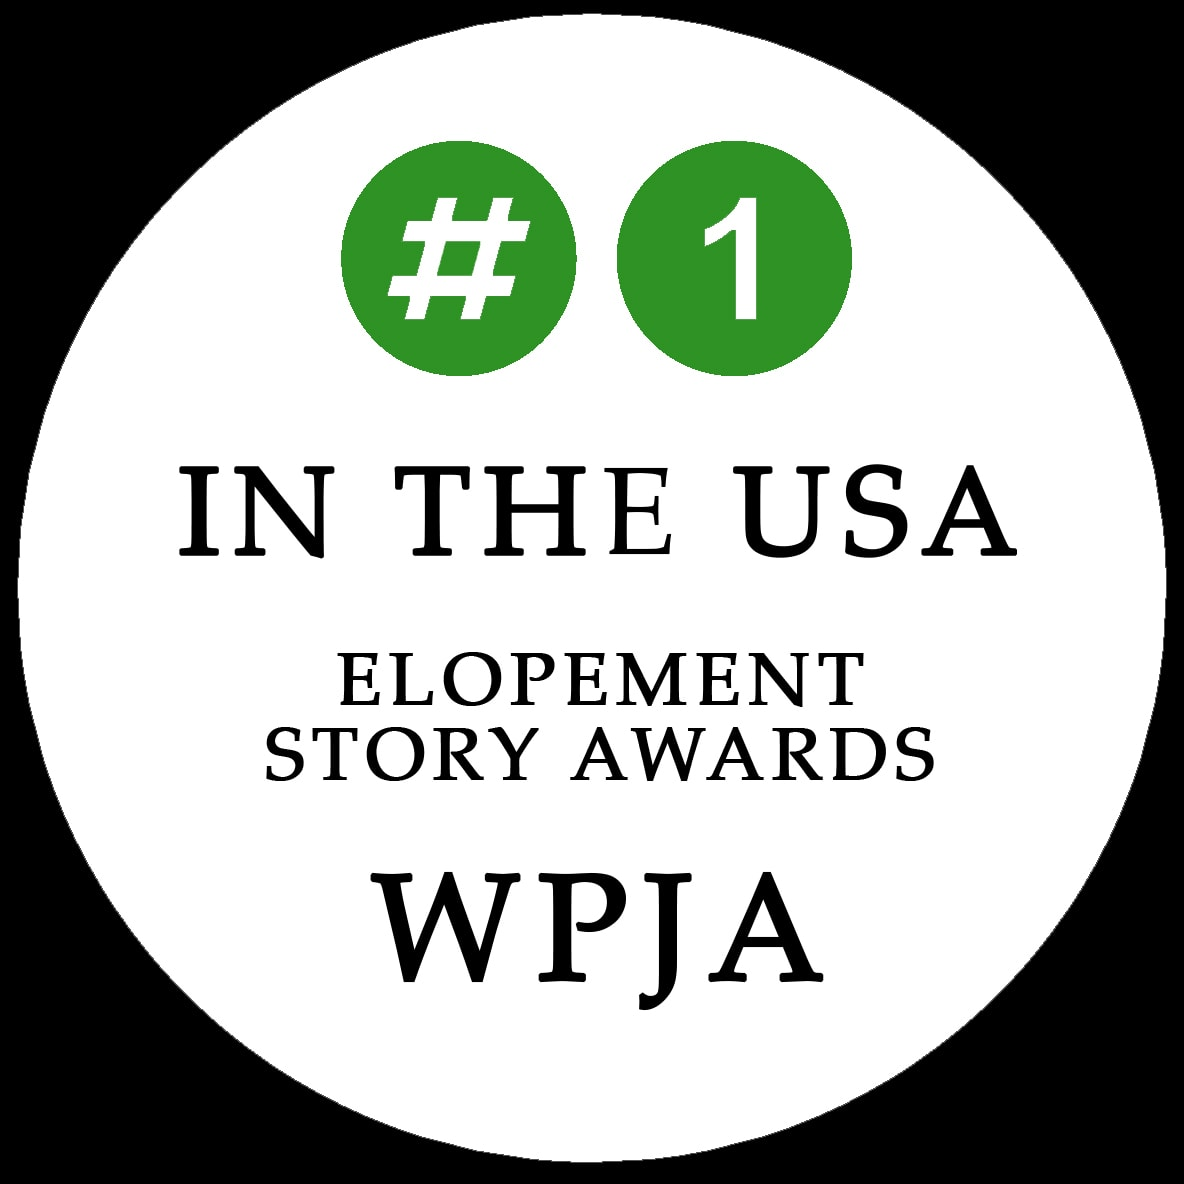 I have the most elopement story awards in the USA